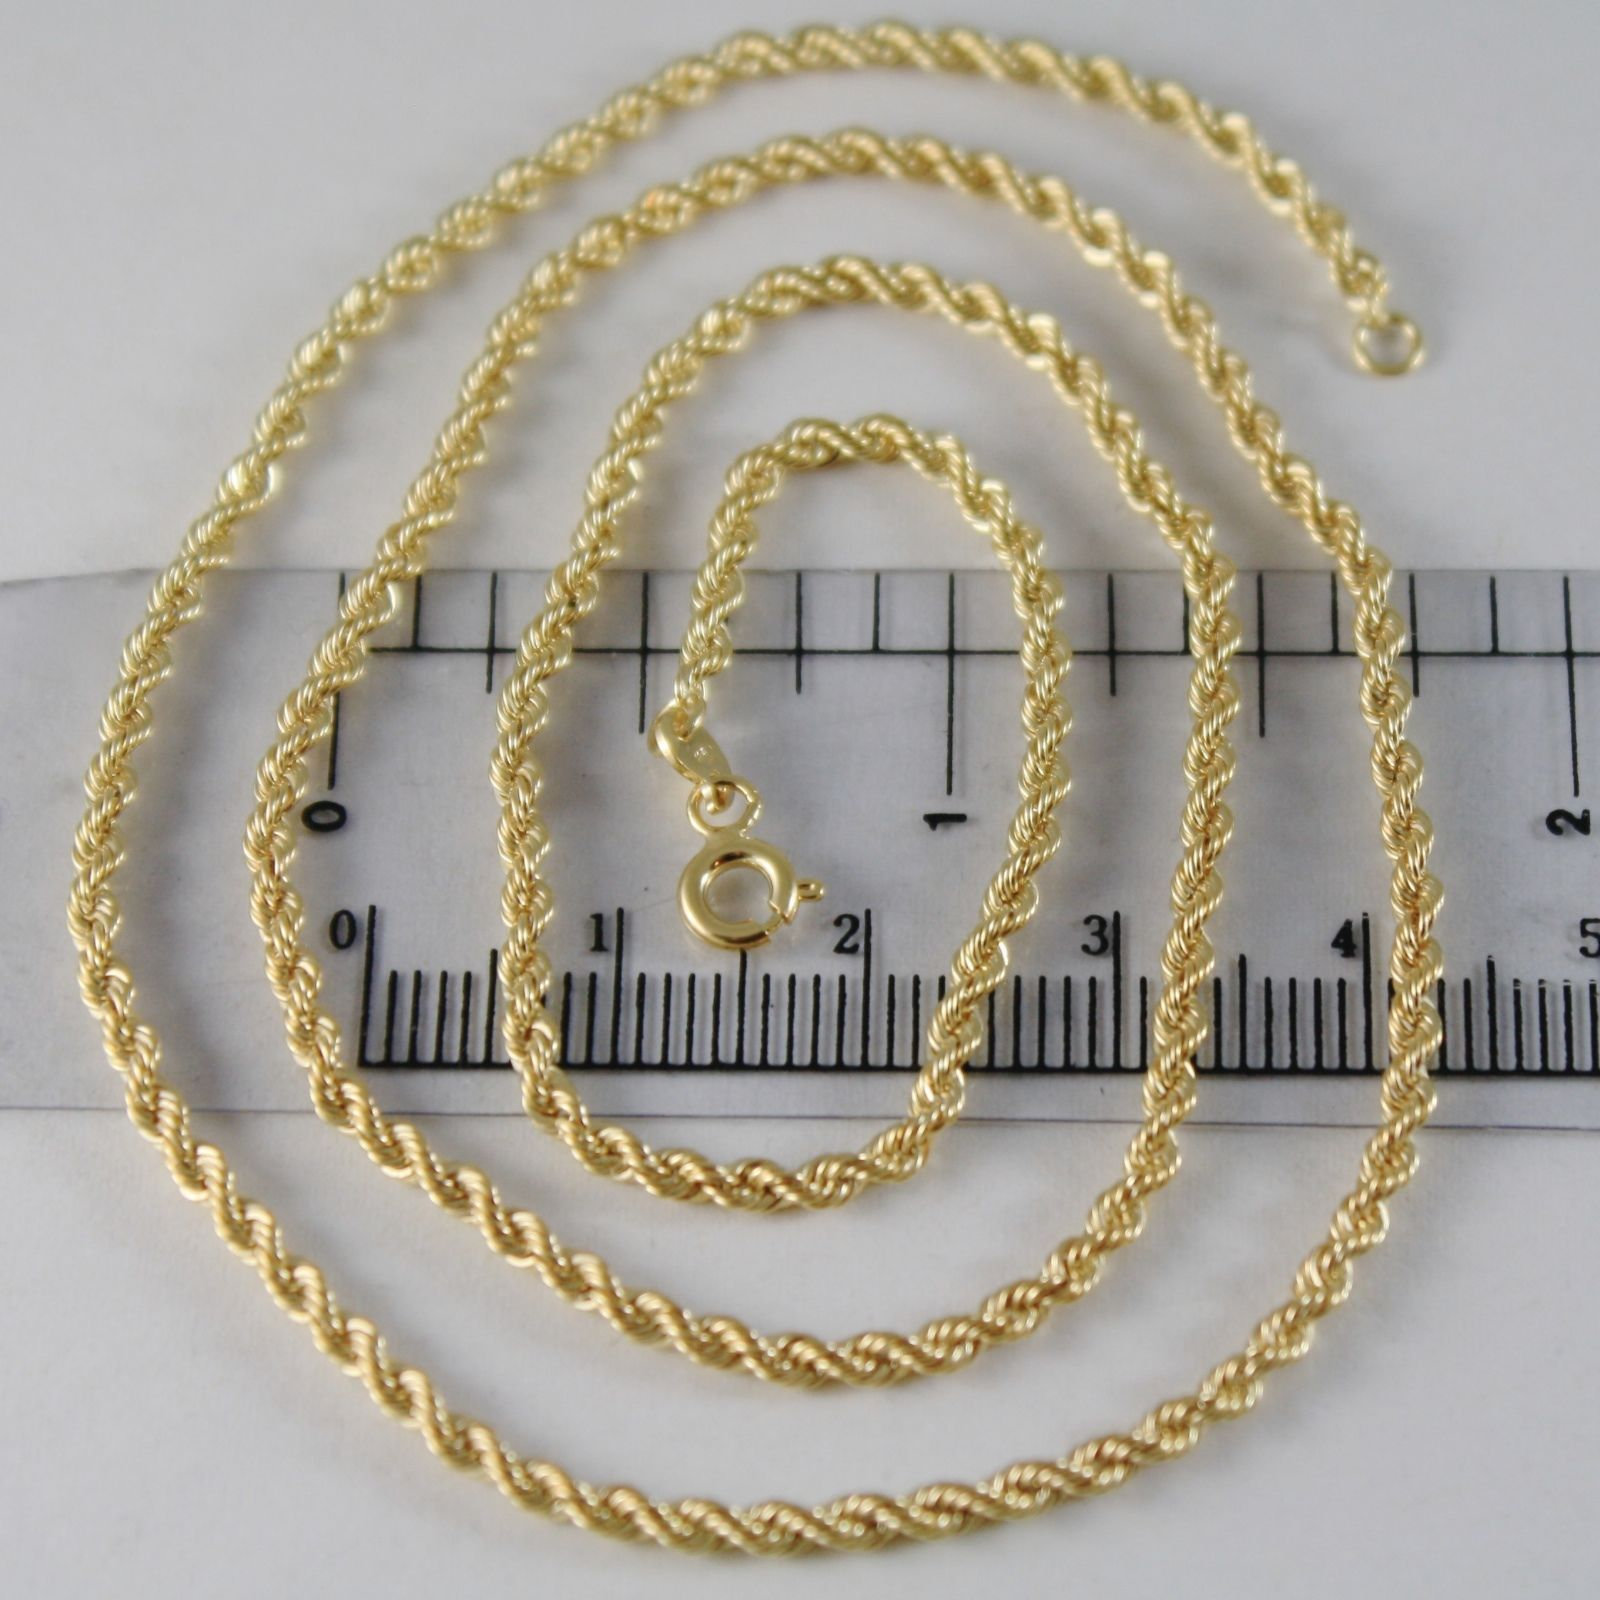 9K YELLOW GOLD ROPE CHAIN, 17.71, BRAID ROPE CORD, NECKLACE MADE IN ITALY, 9KT